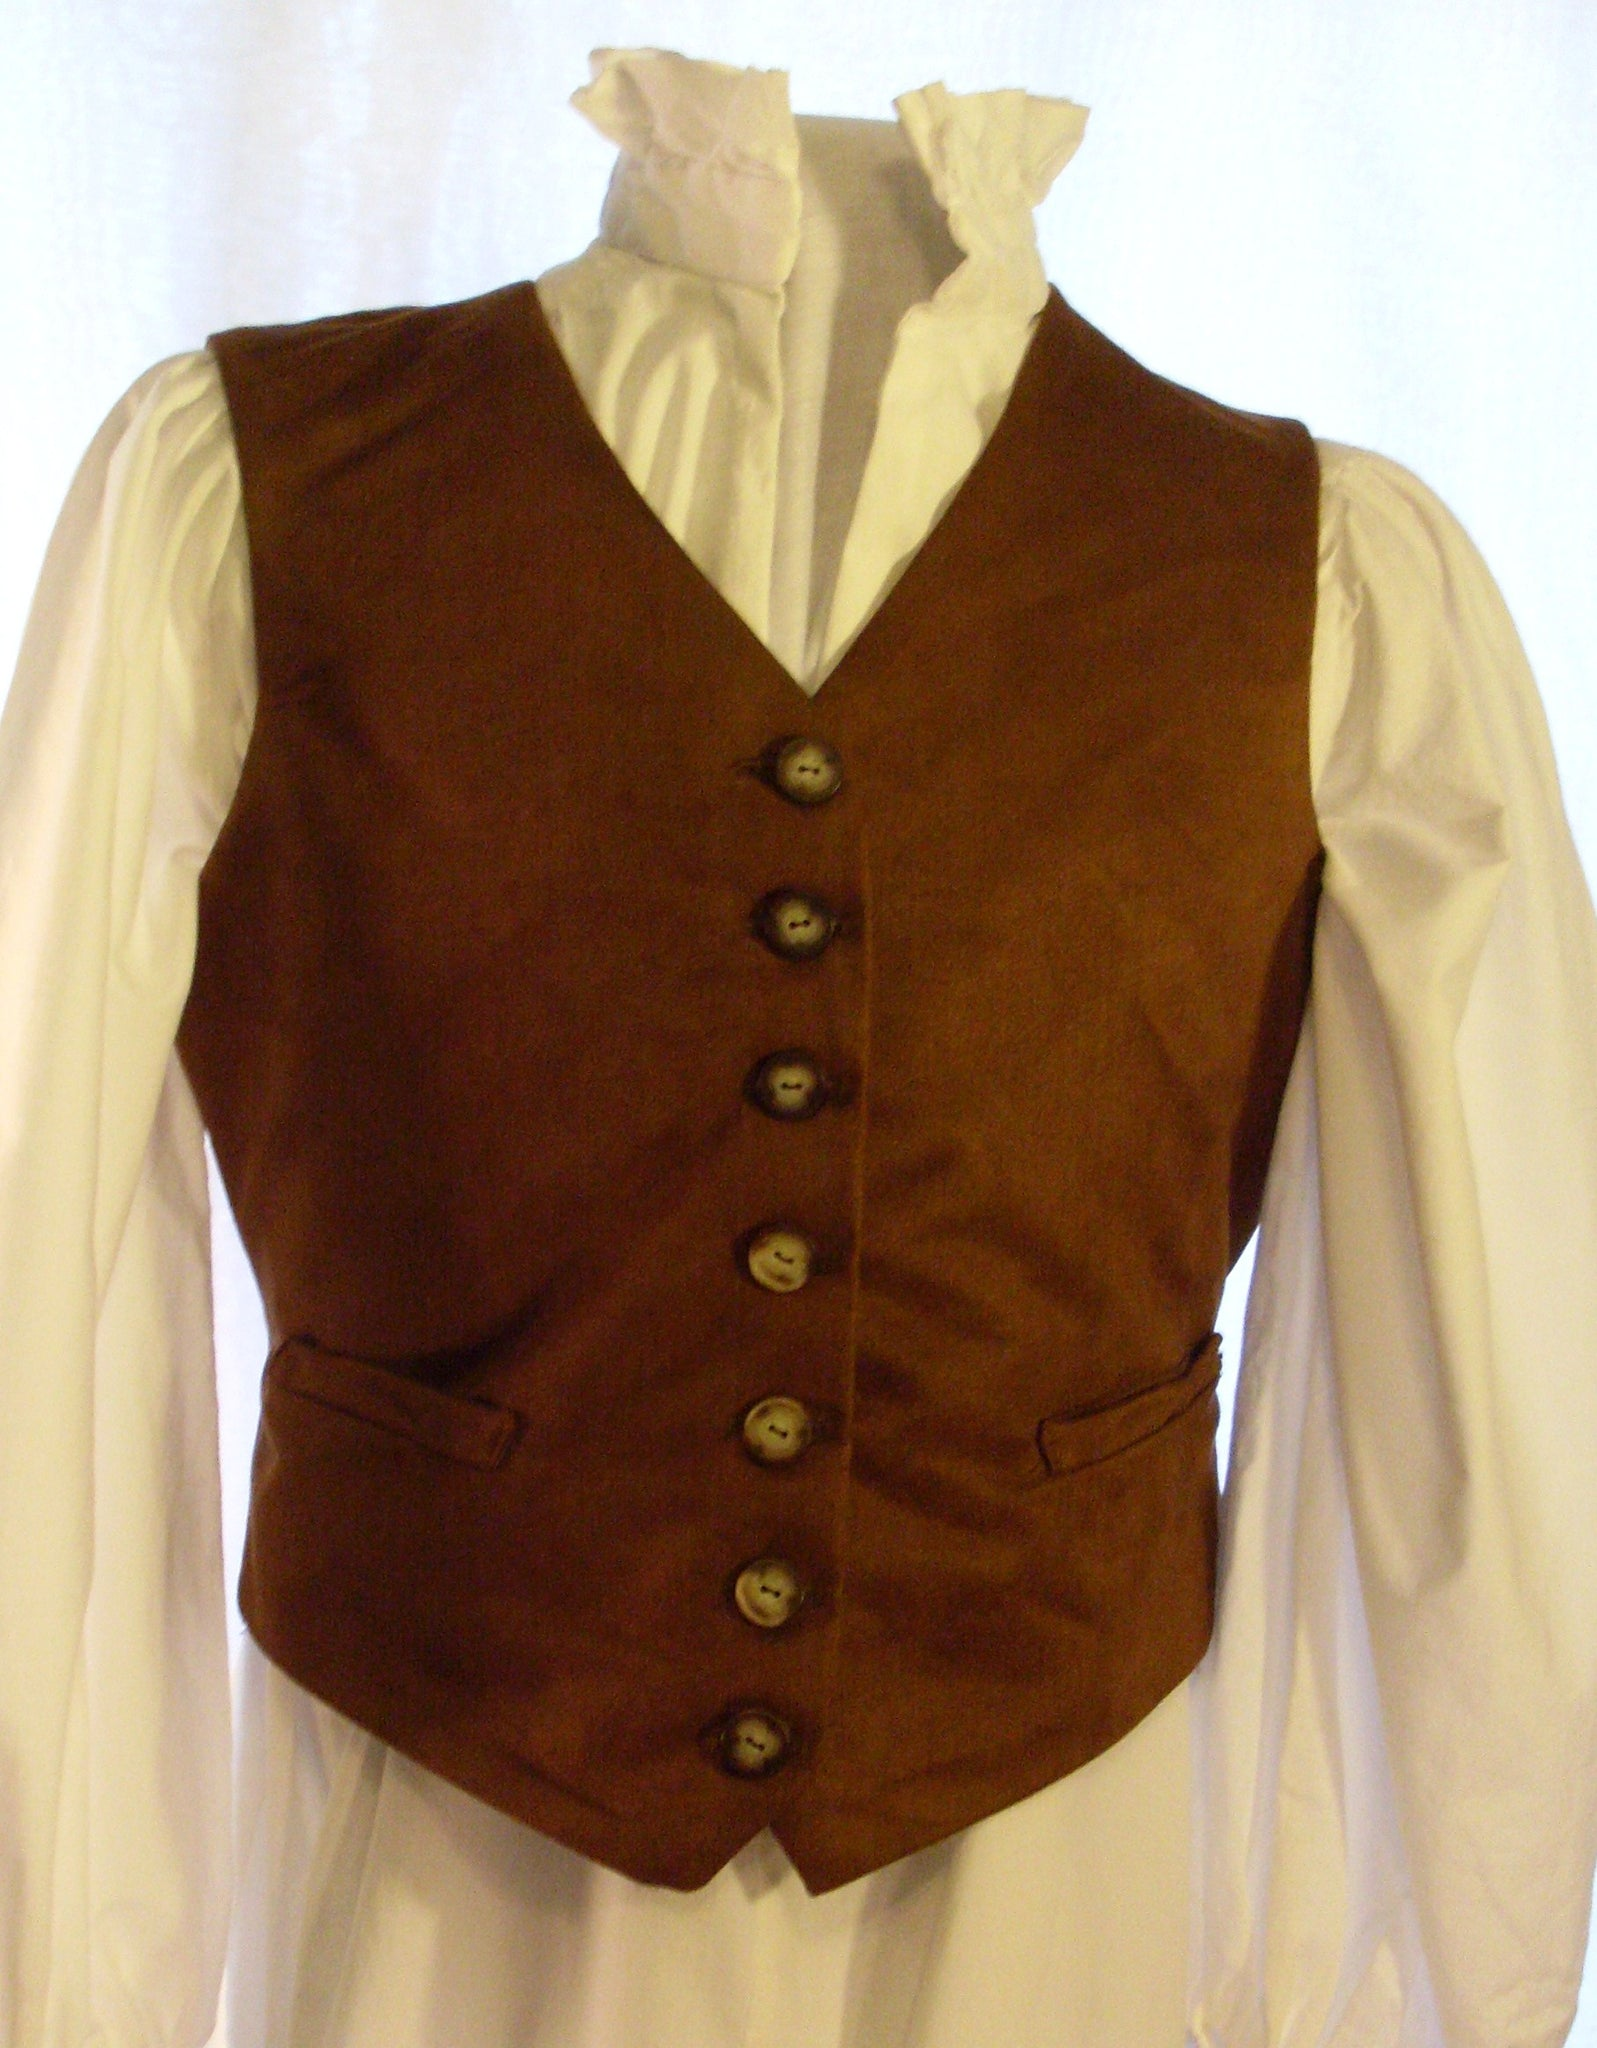 Gent's Vest by White Pavilion, front view. This vest is perfect for steampunks, cowboys, any 1800's living history, and hobbits.